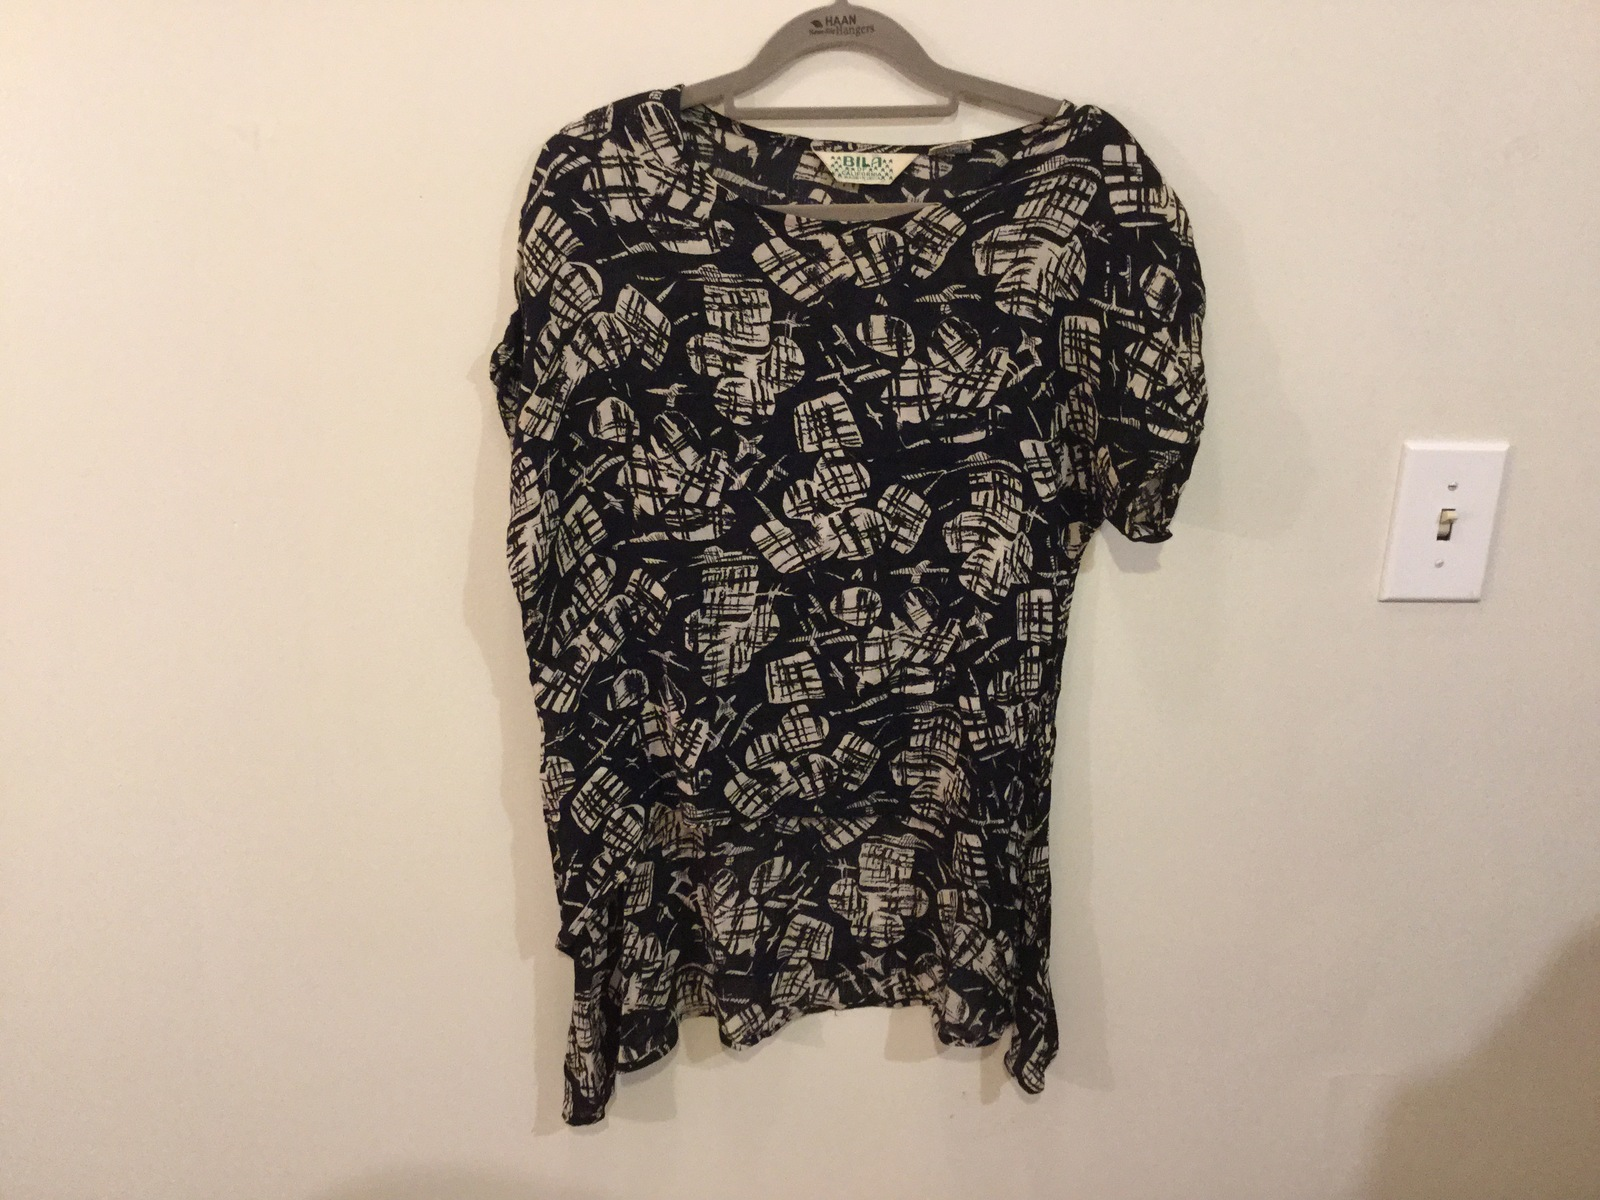 Bila of California Black and White Printed Blouse Top t-Shirt 100% Rayon, size S